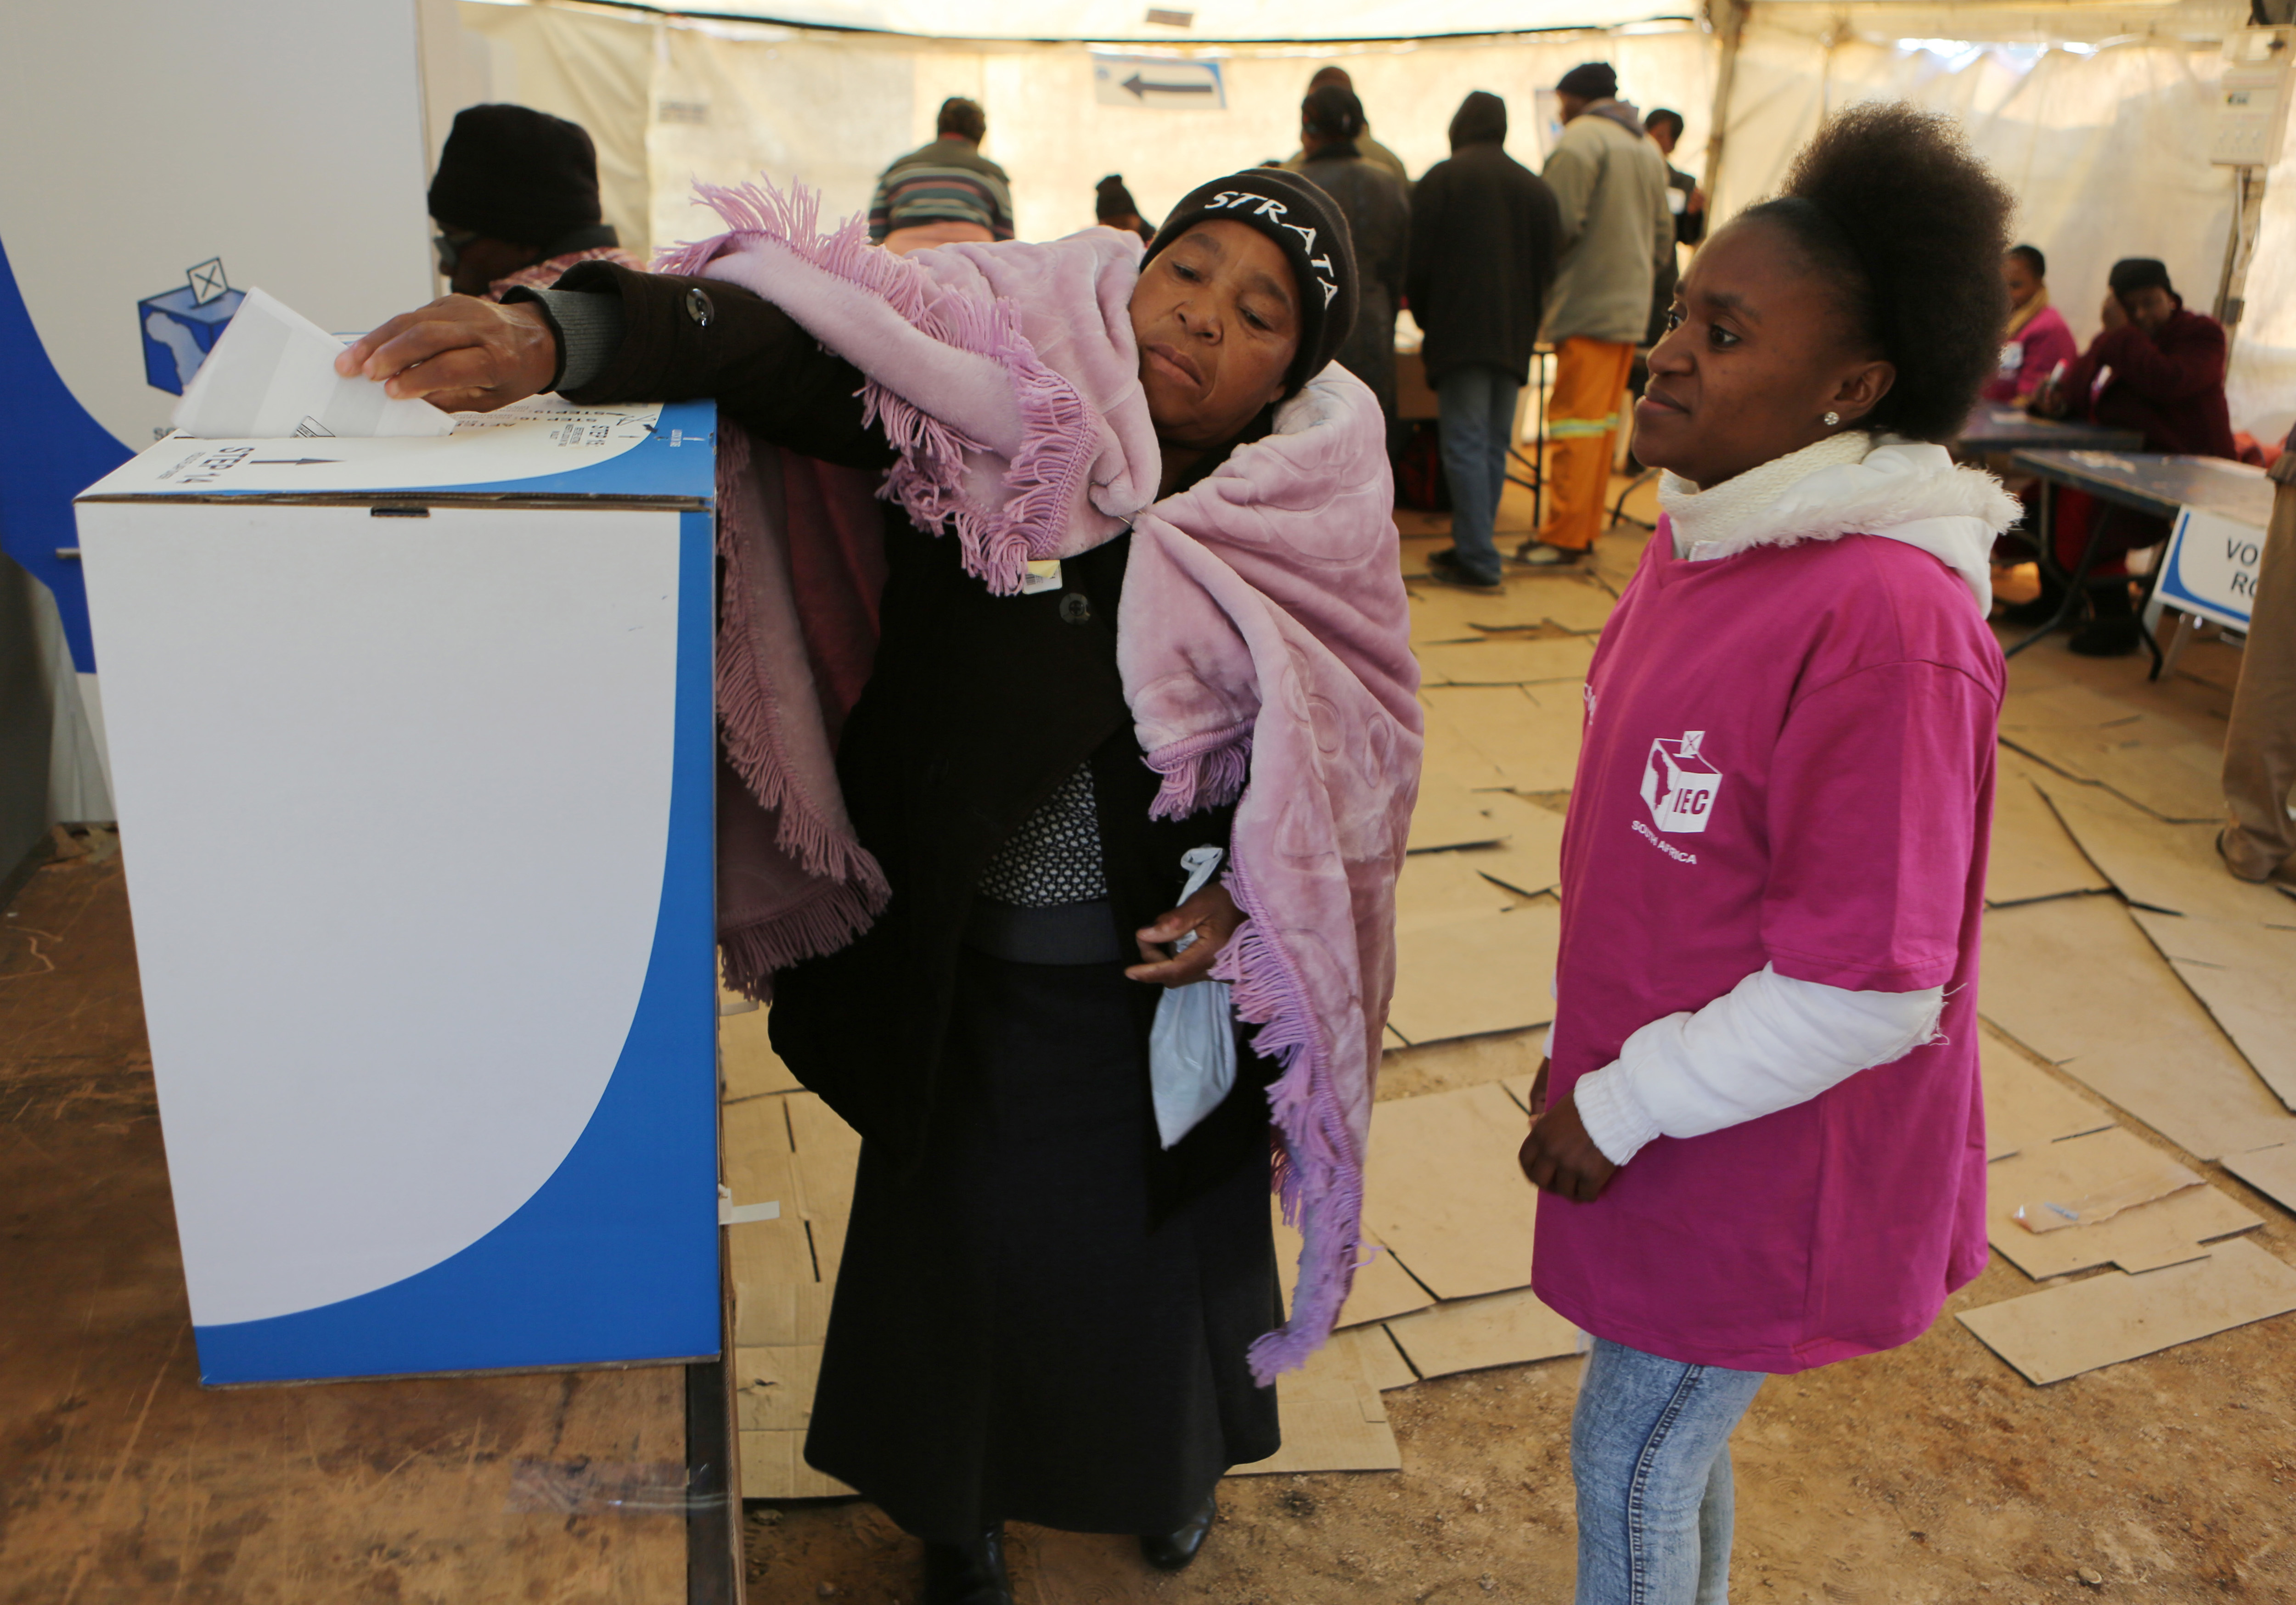 A woman casts her vote at a polling station in Soweto, South Africa, Aug. 3, 2016. South Africans were voting in municipal elections in which the ruling African National Congress seeks to retain control of key metropolitan areas despite a vigorous ch...